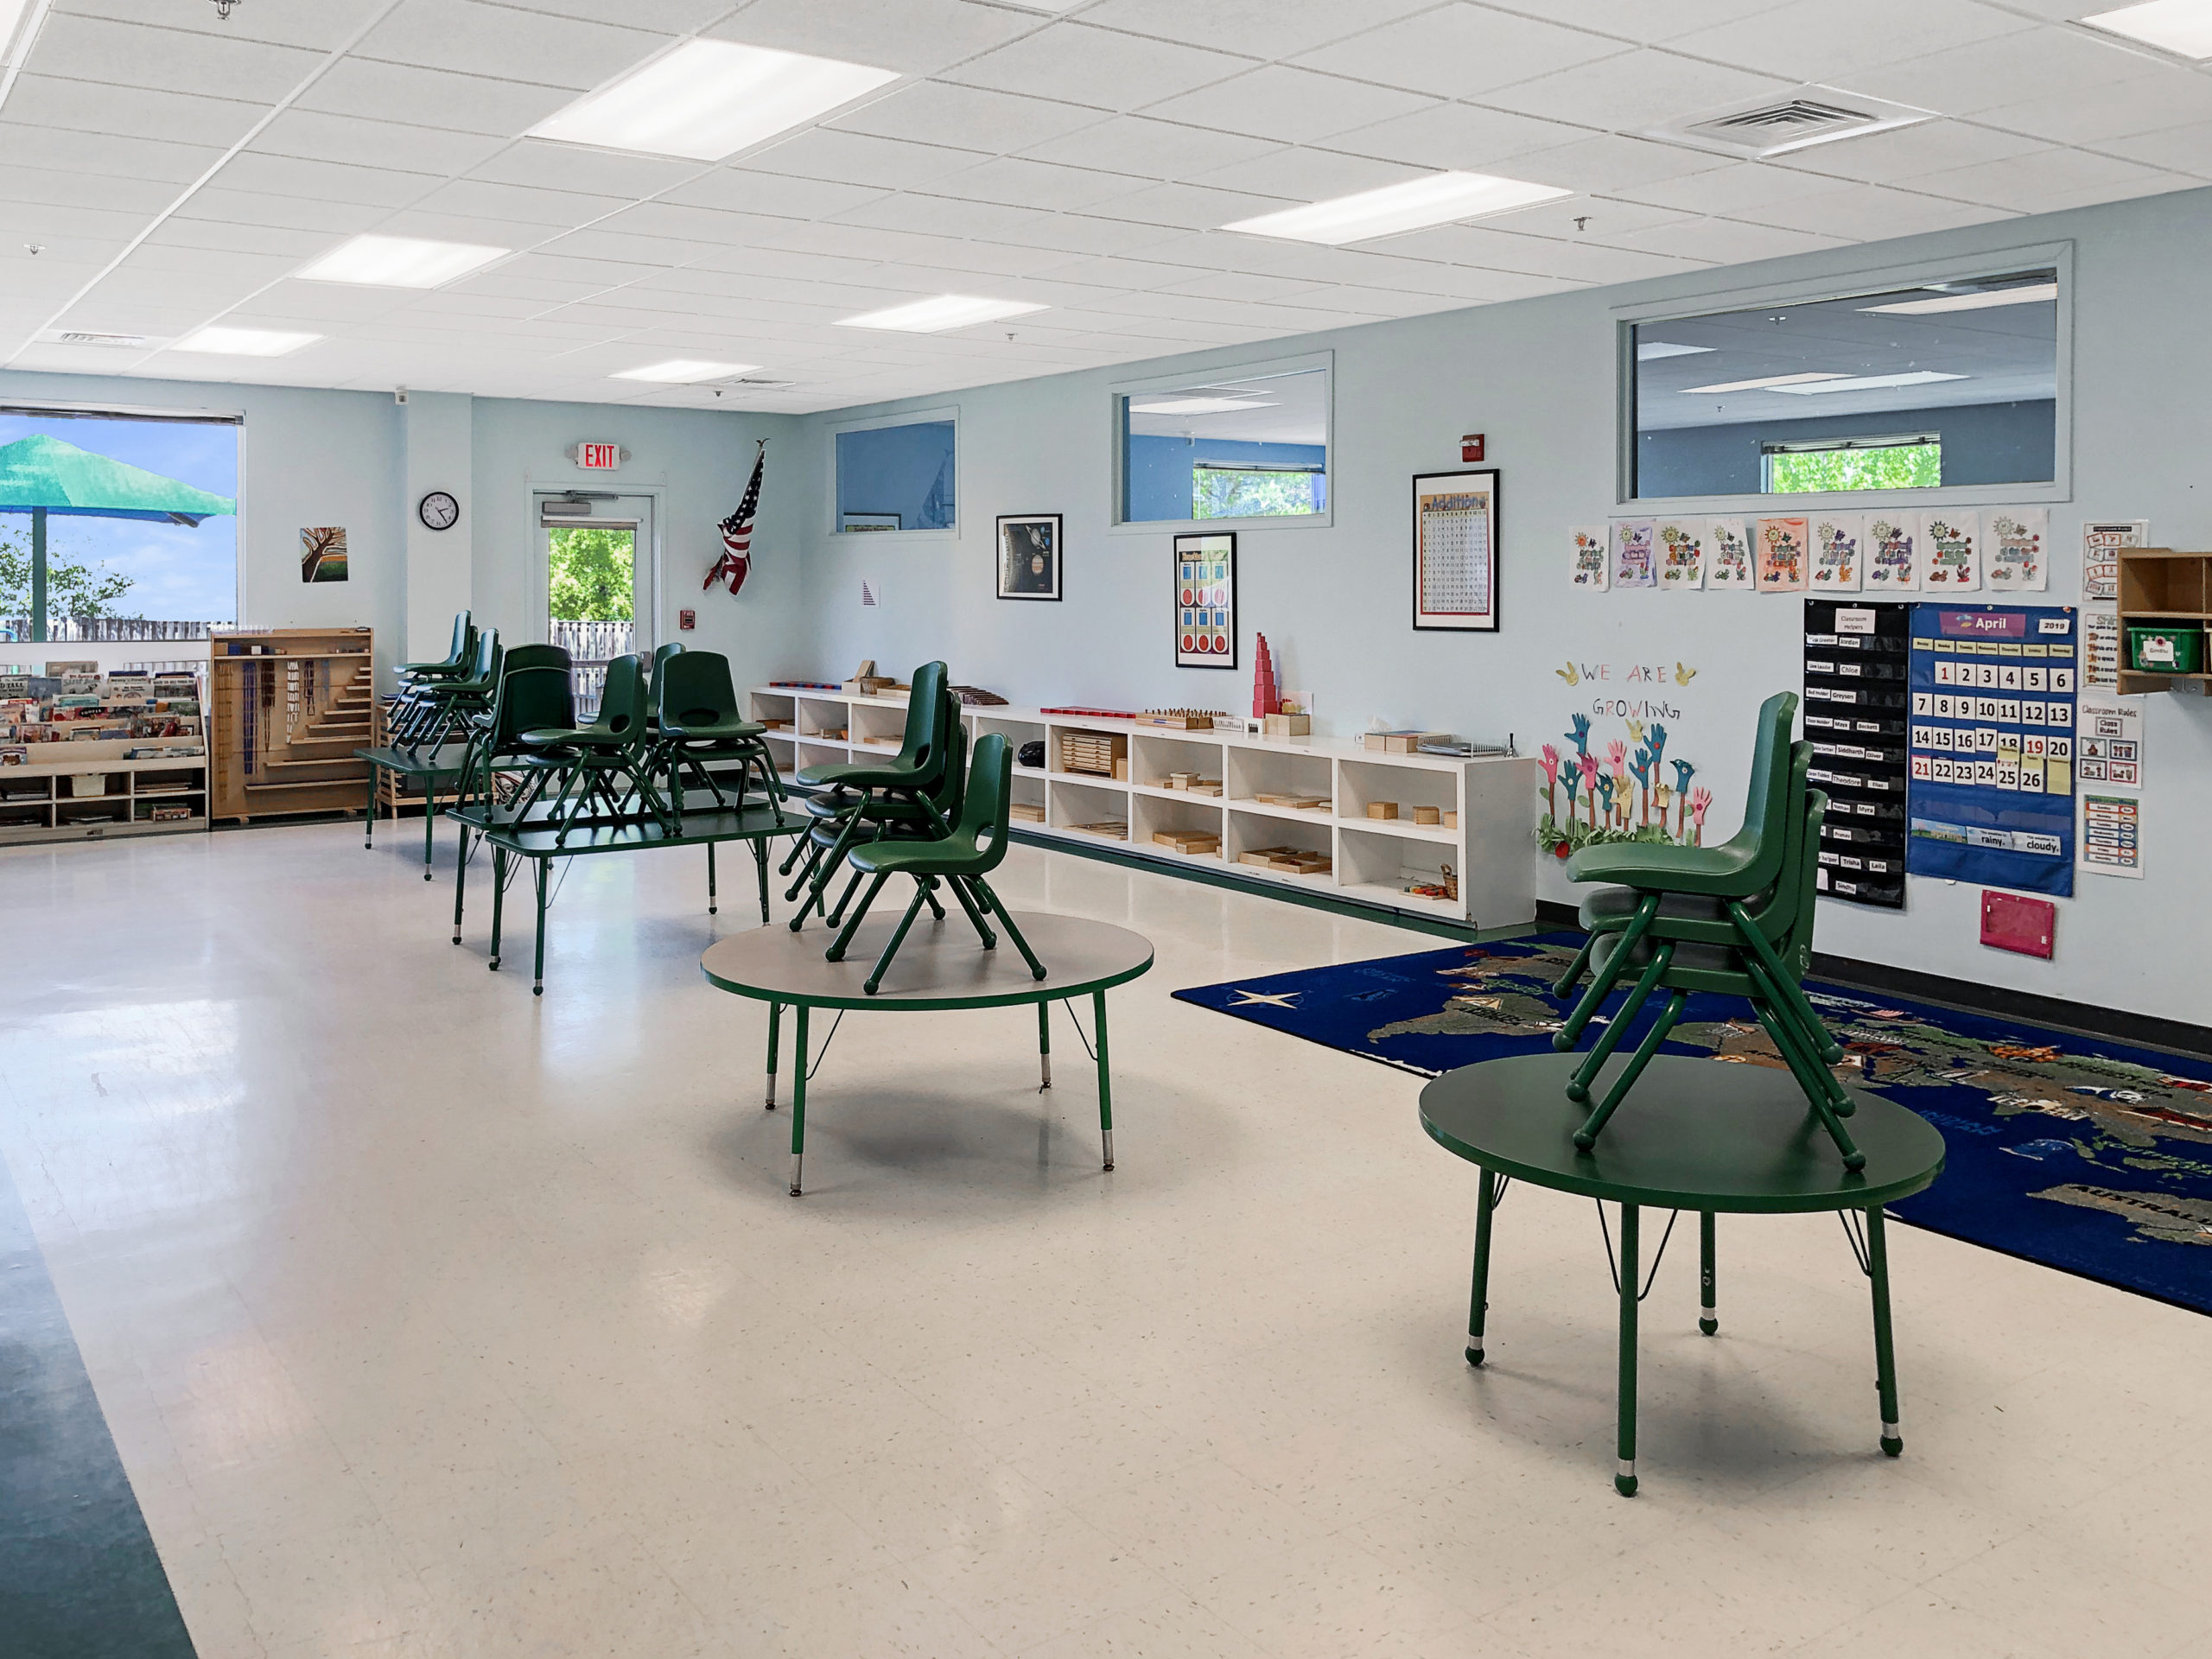 NNN Accredited Private Montessori School in Loudoun County, VA | 6.76% Cap | NOI: $246,706 | 3% Annual Escalations | 11 Years Remaining on Lease